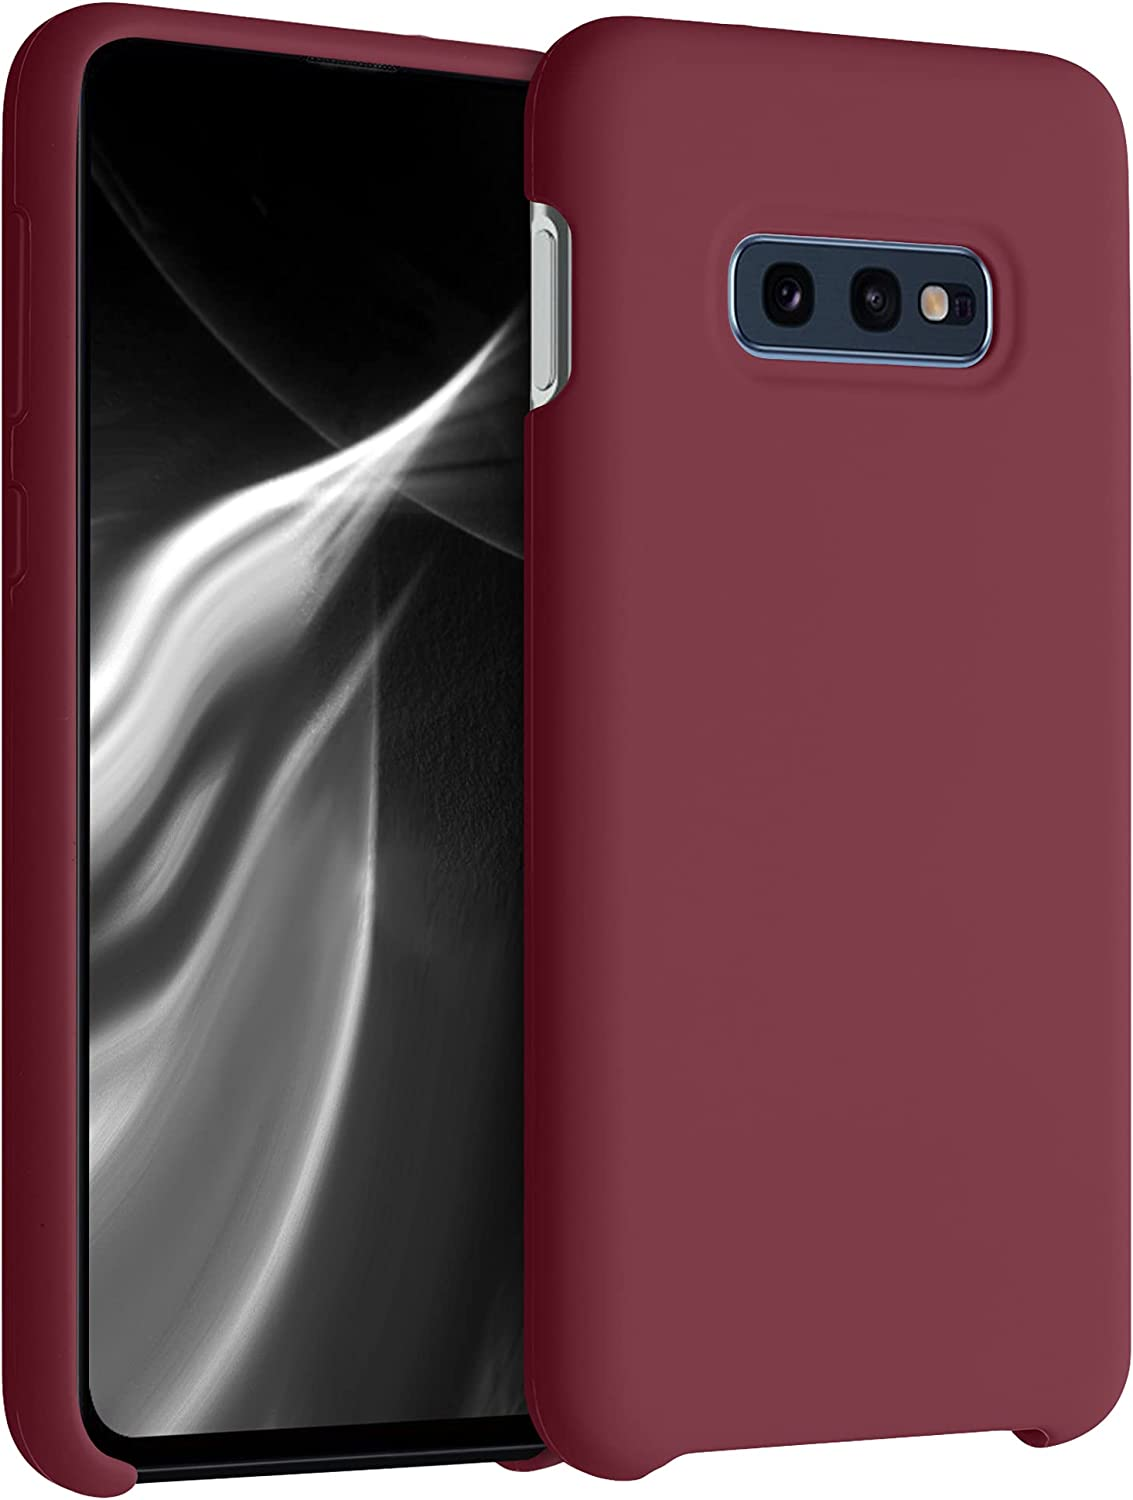 kwmobile TPU Silicone Case Compatible with Samsung Galaxy S10e - Case Slim Phone Cover with Soft Finish - Rhubarb Red